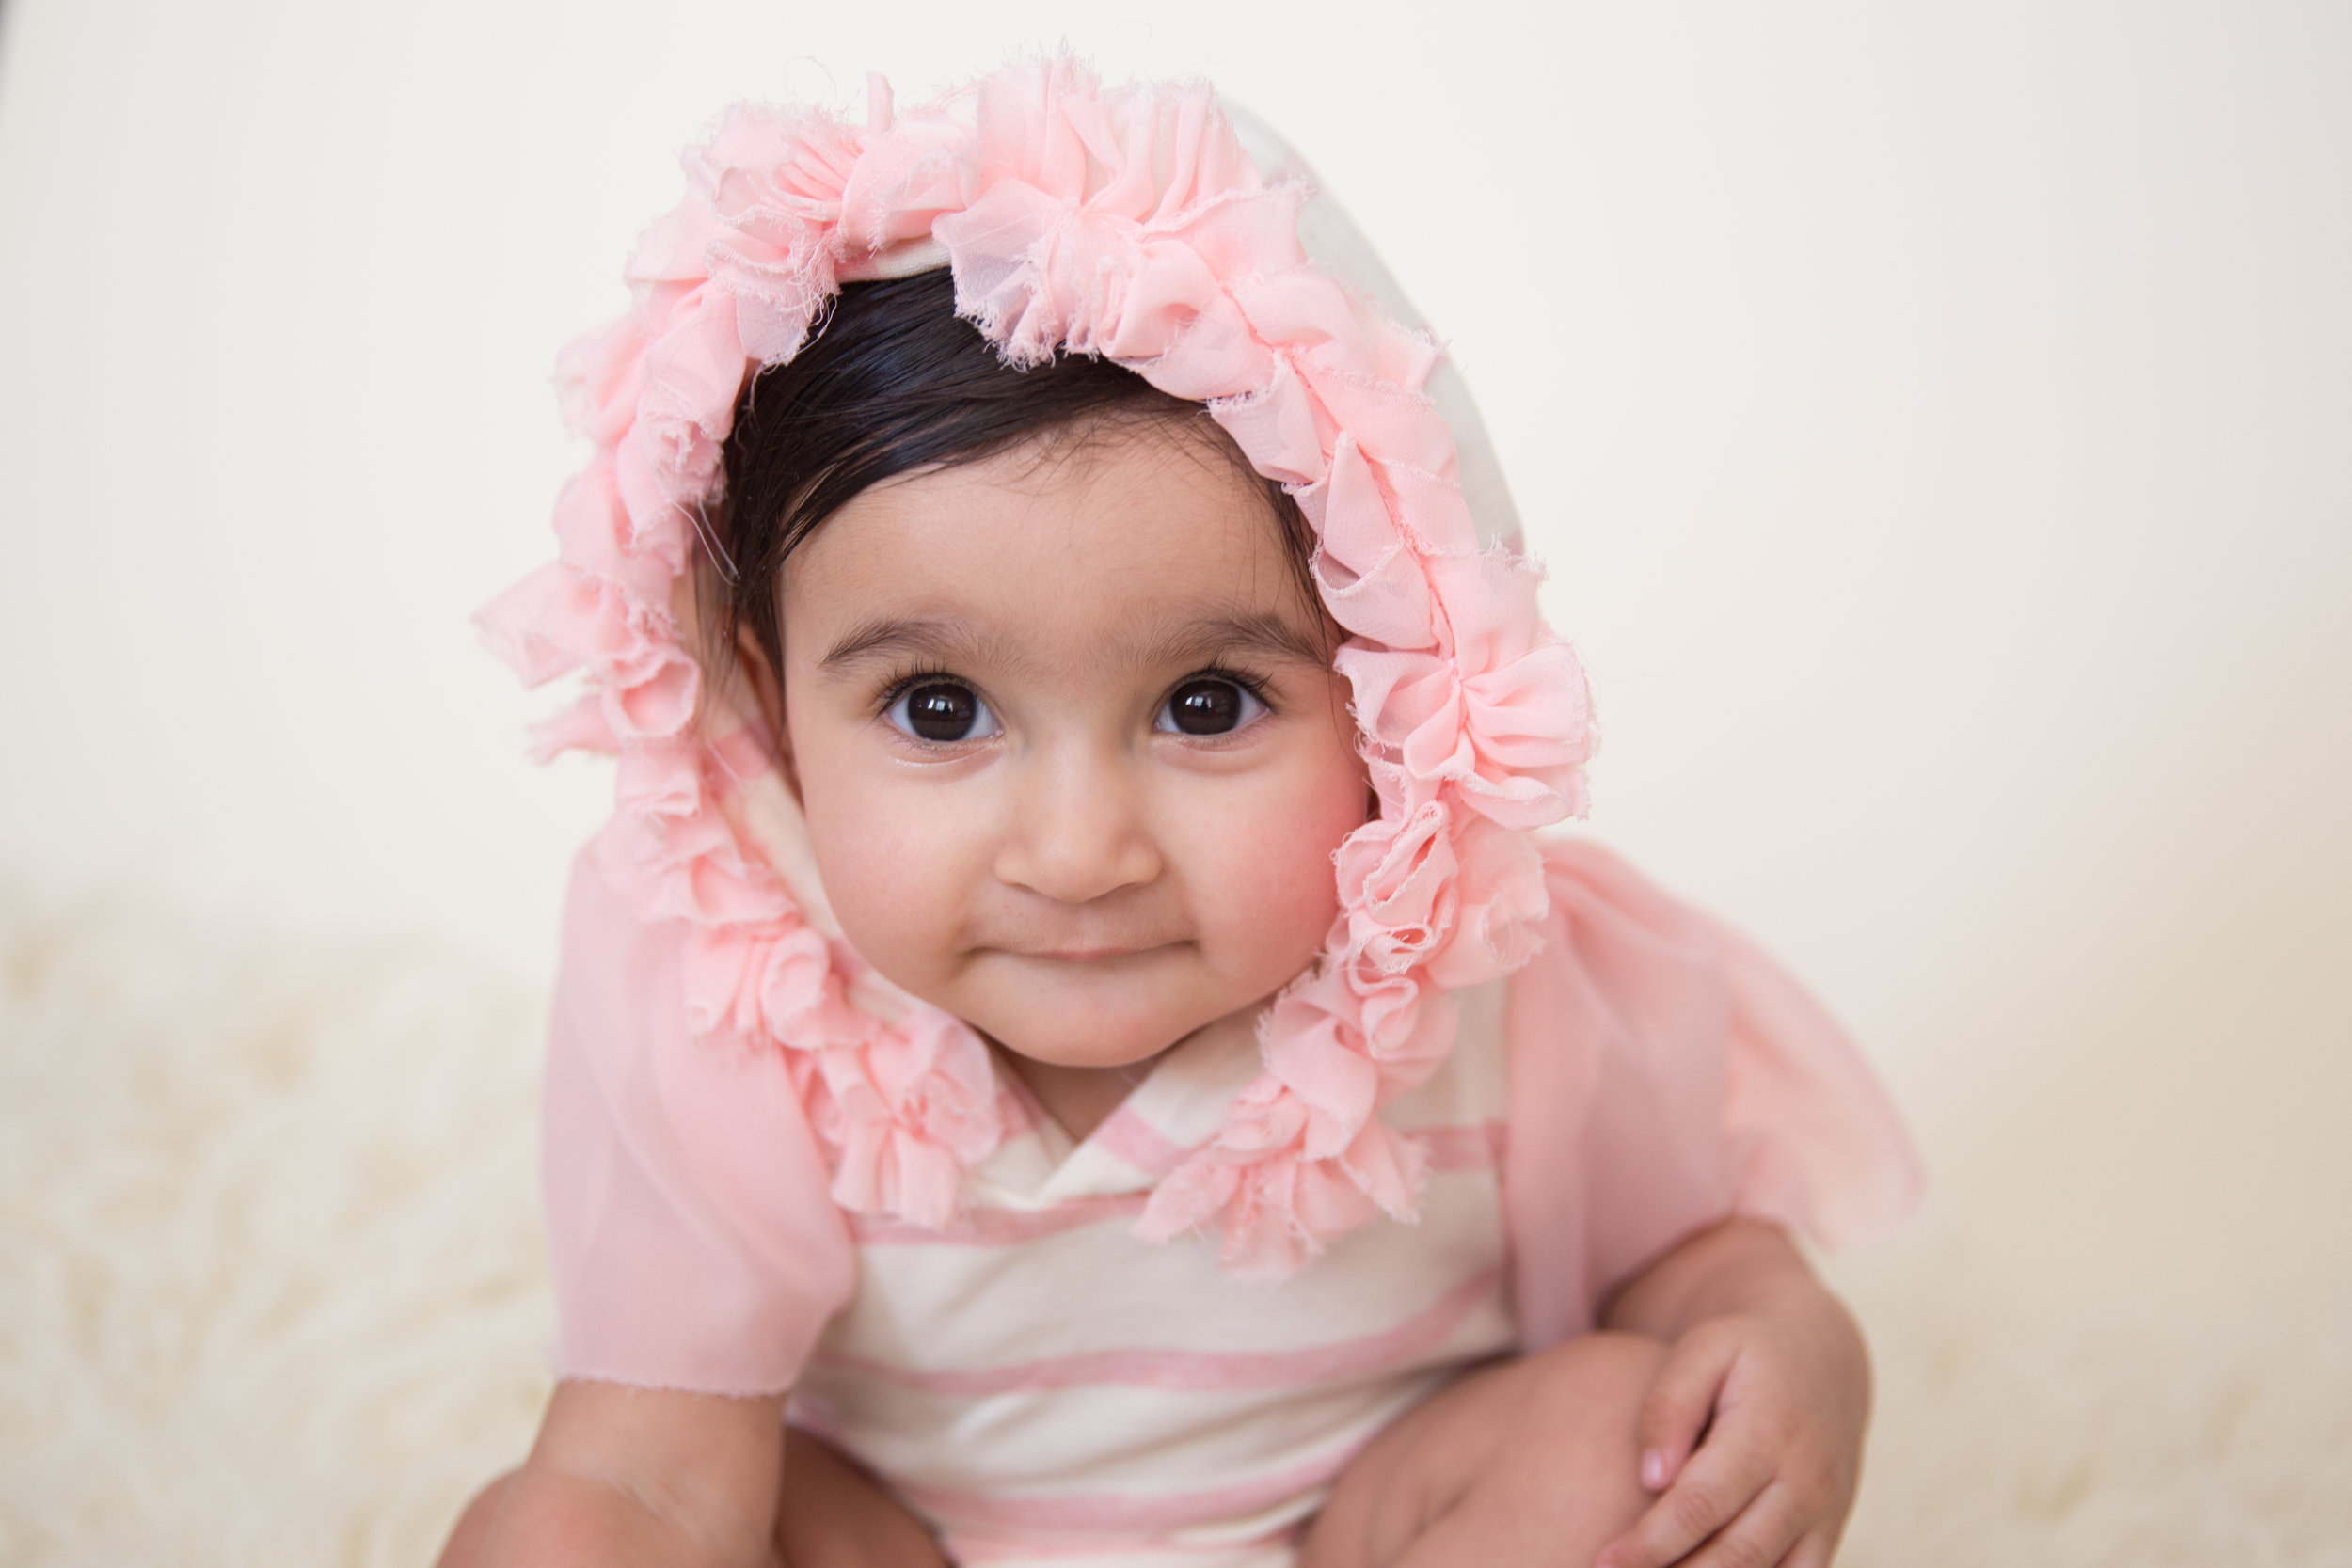 Sweet adorable baby girl rocking her Baby milestone session in a cute pink outfit with Airdrie photographer